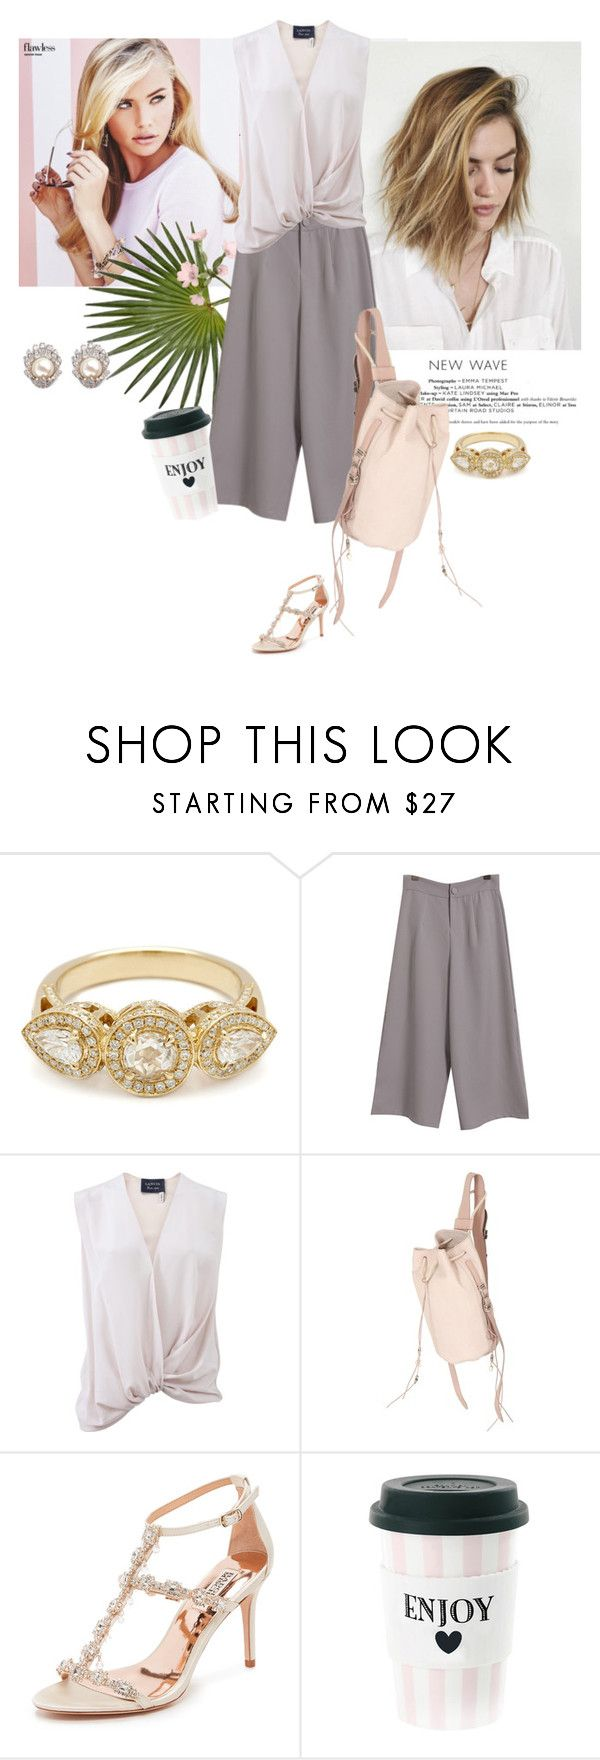 """""""New Wave"""" by rever-de-paris ❤ liked on Polyvore featuring Chicnova Fashion, Lanvin, Barbara Bonner, Badgley Mischka, CZ by Kenneth Jay Lane, pastels, SpringStyle, fashionset and polyvoreeditorial"""